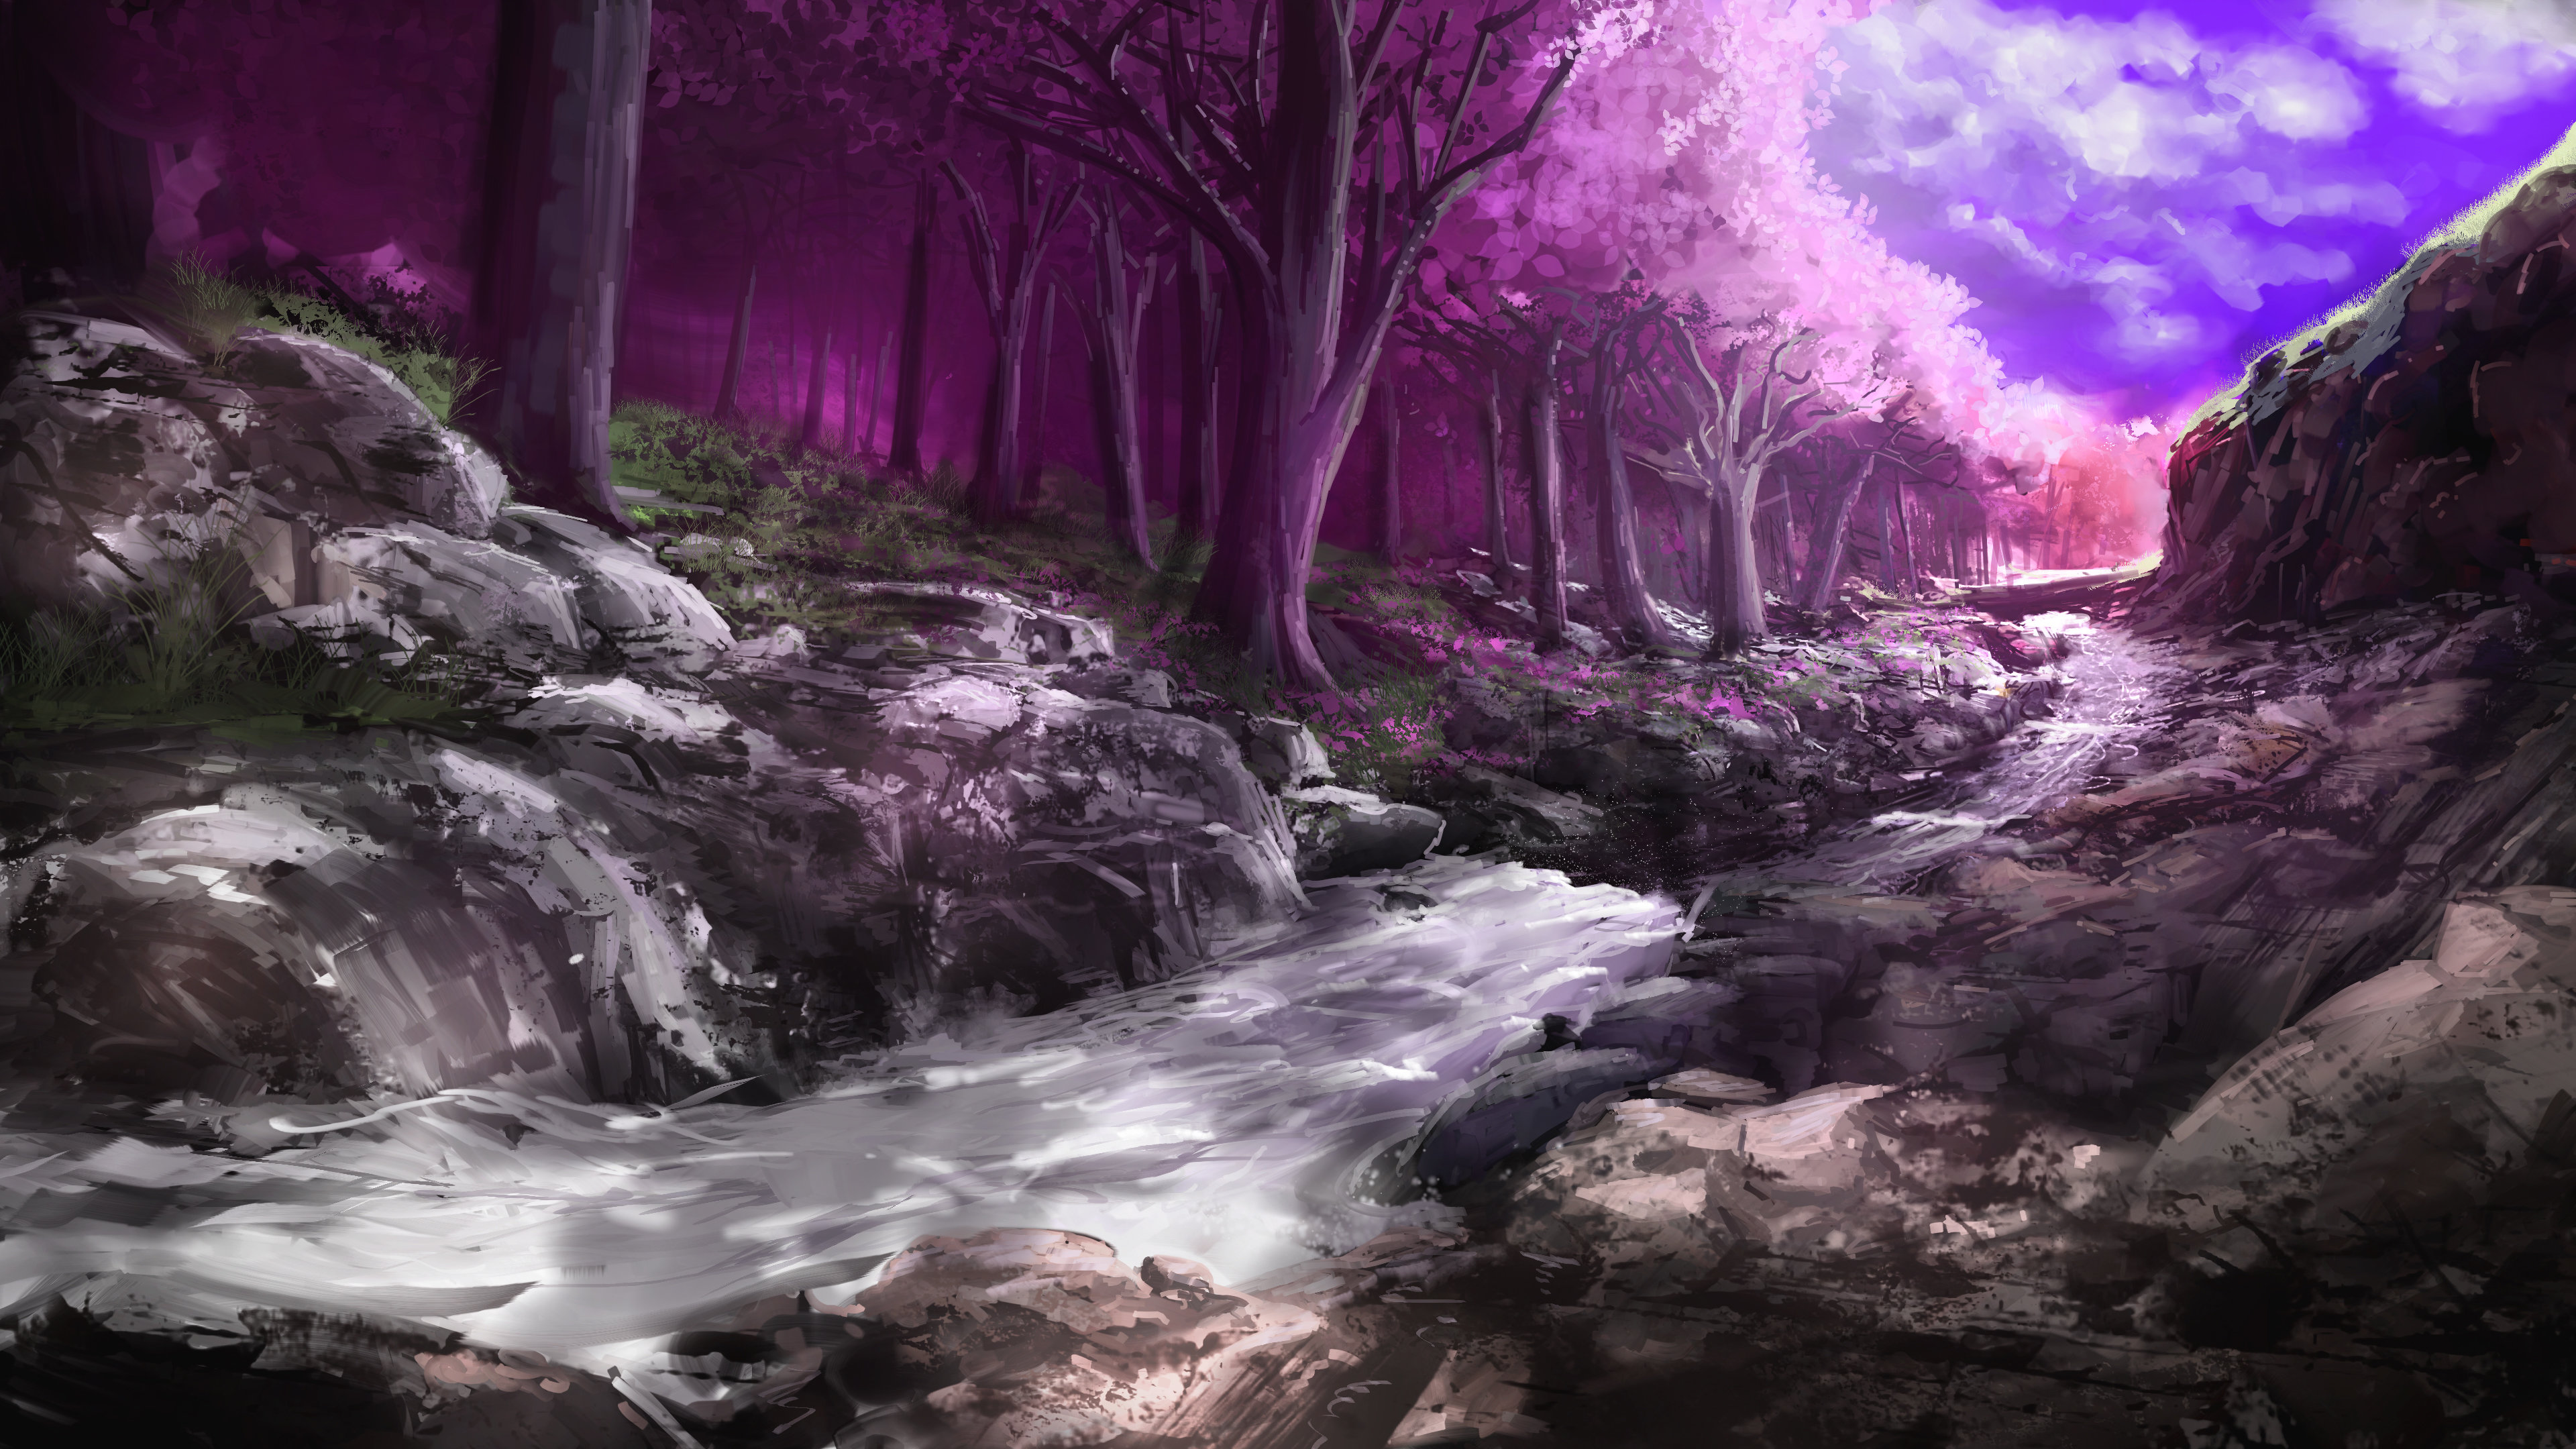 Fantasy forest wallpapers 3840x2160 ultra hd 4k desktop - Desktop wallpaper 4k ...